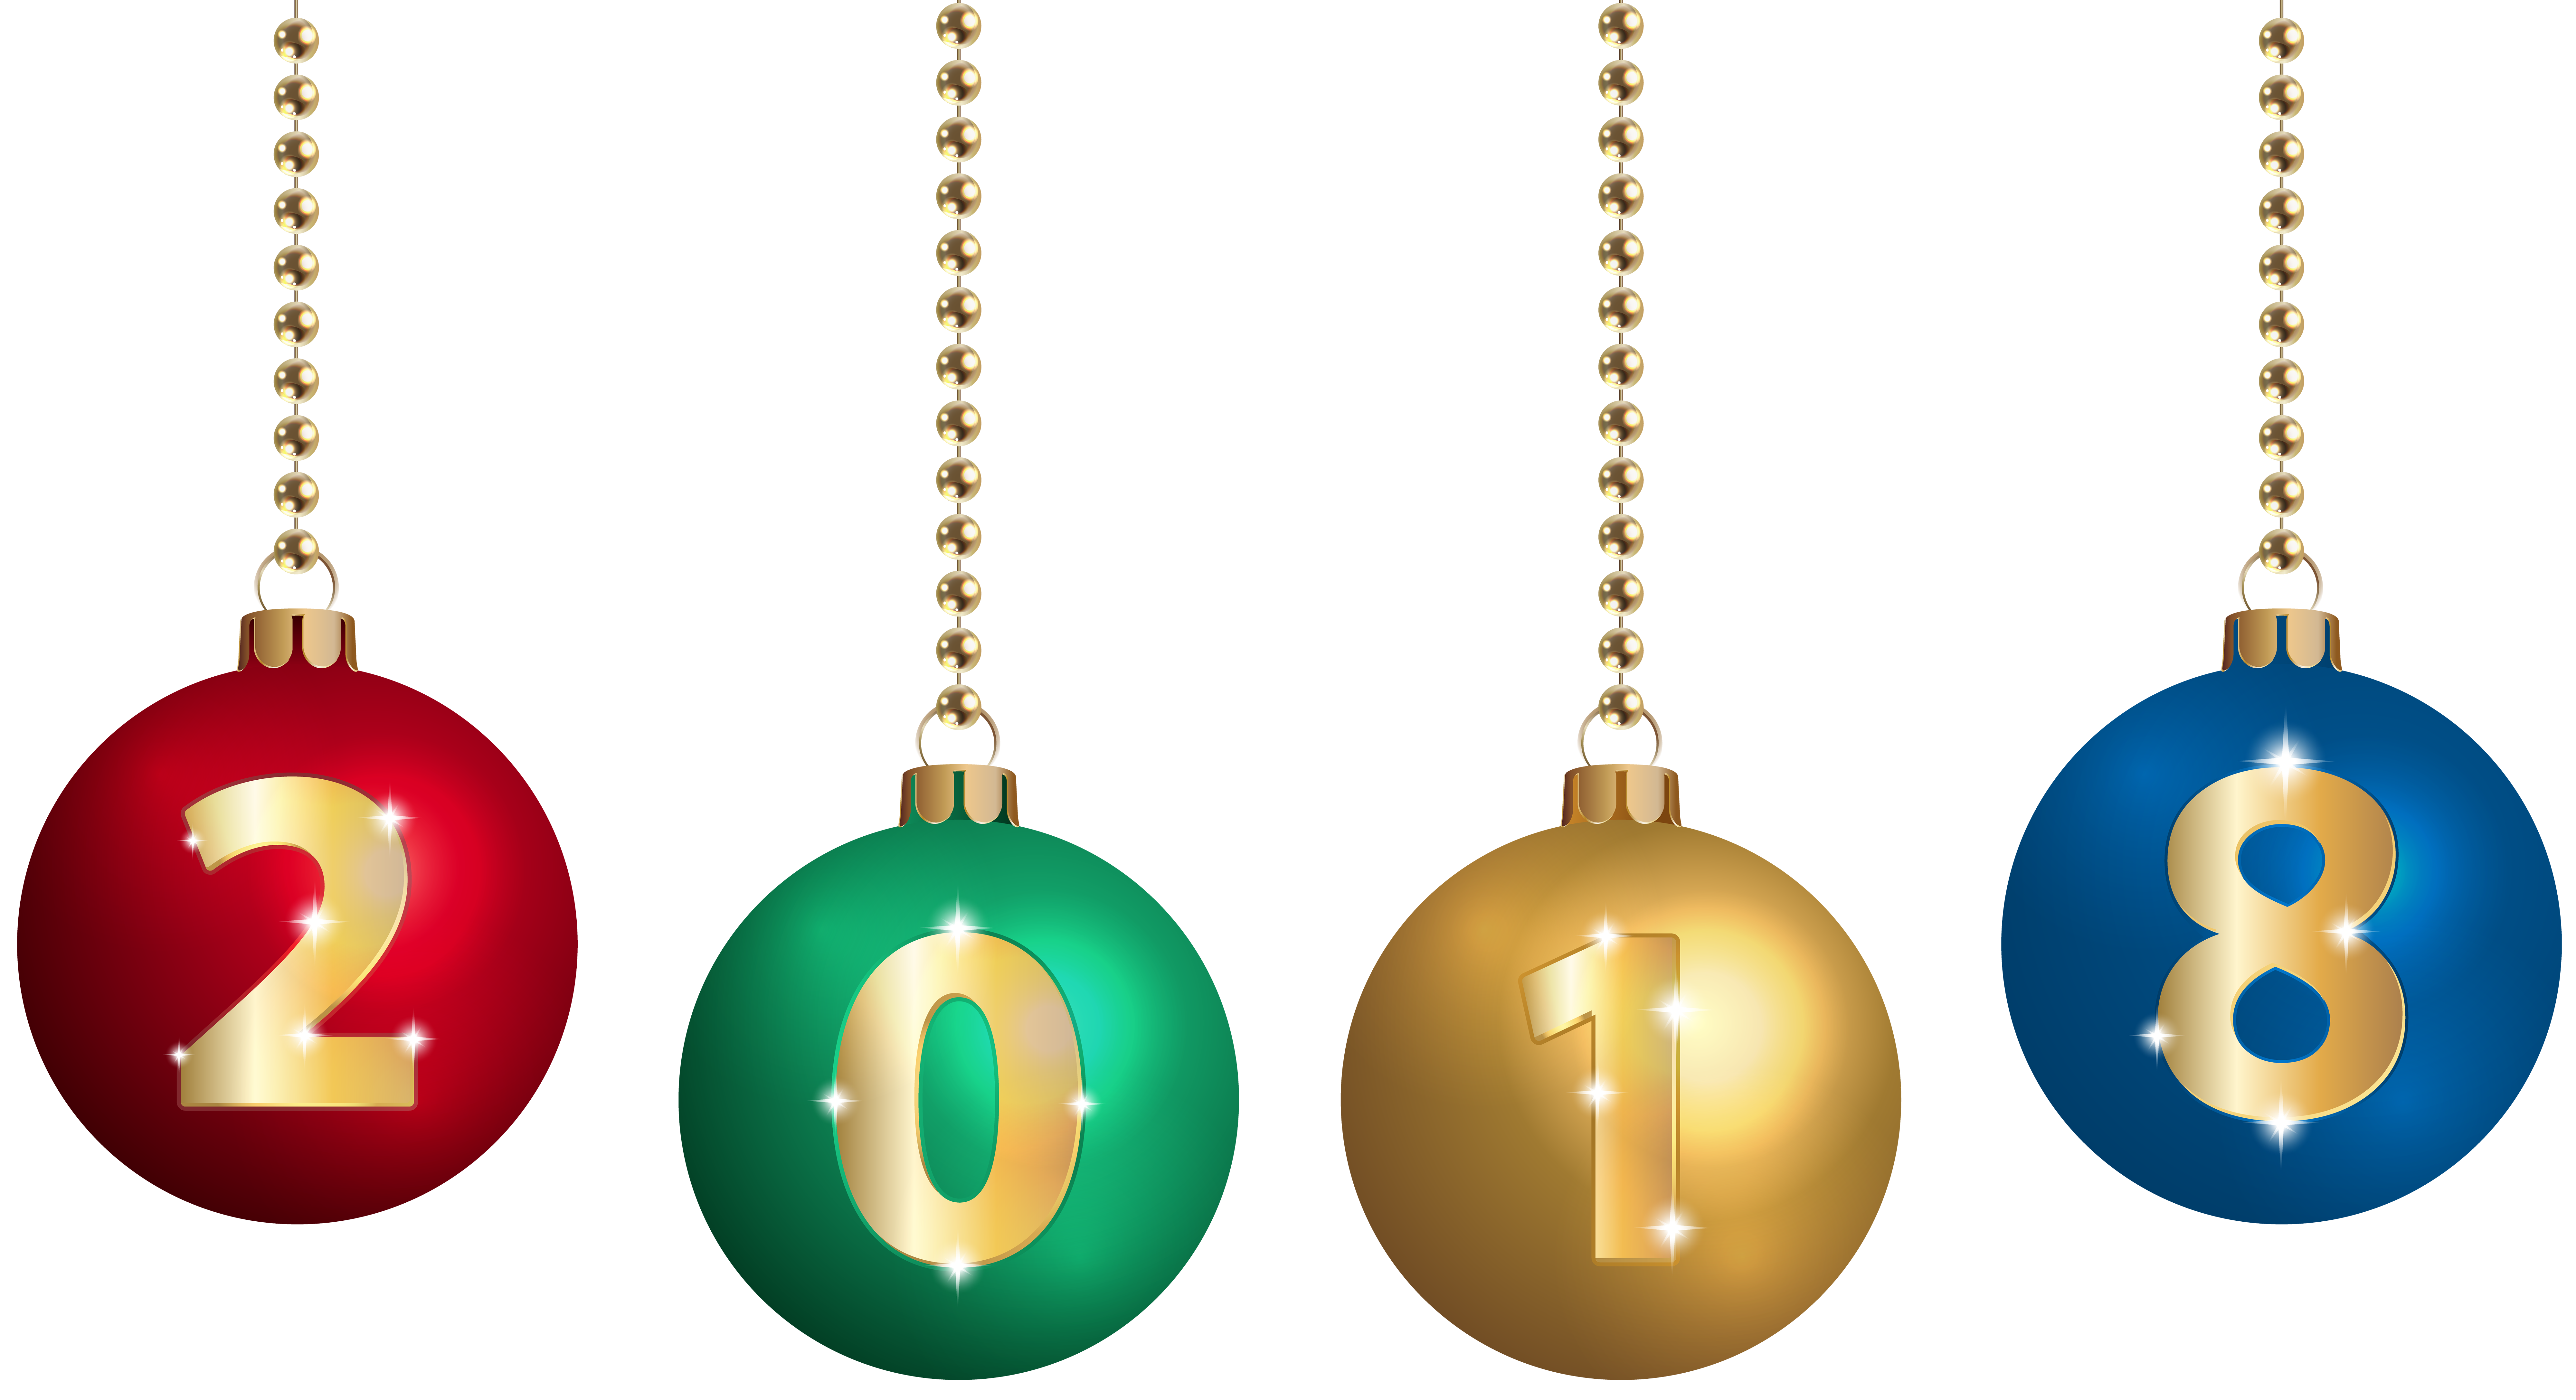 Christmas ball ornament clipart png stock Christmas Ball Ornaments Clipart at GetDrawings.com | Free for ... png stock